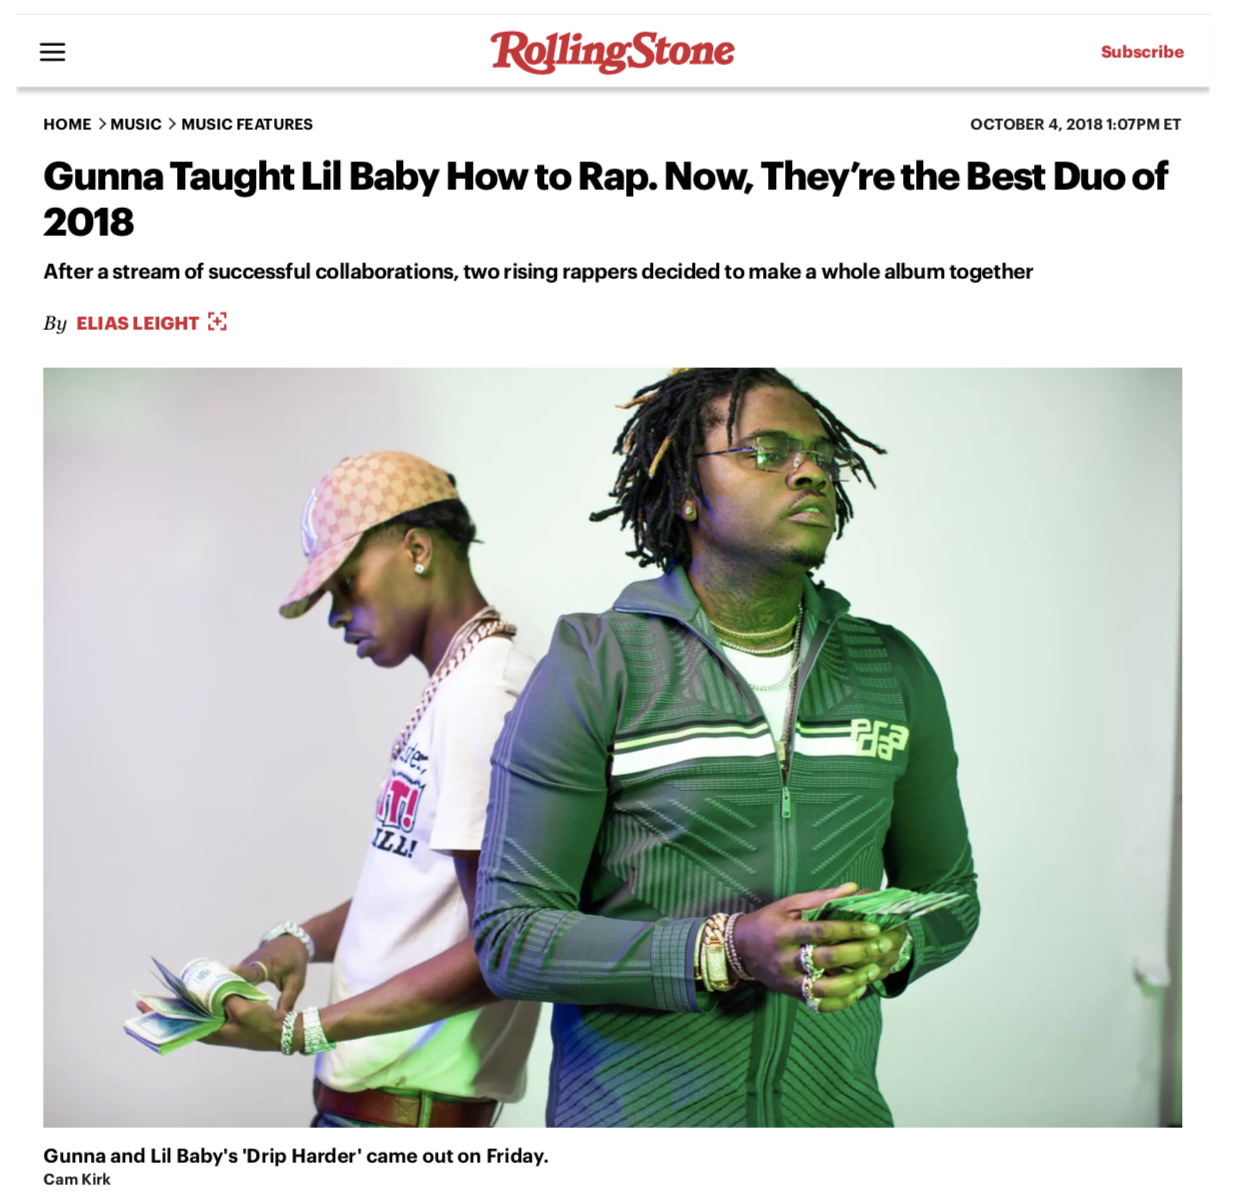 Rolling Stone Gunna & Lil Baby - October 2018